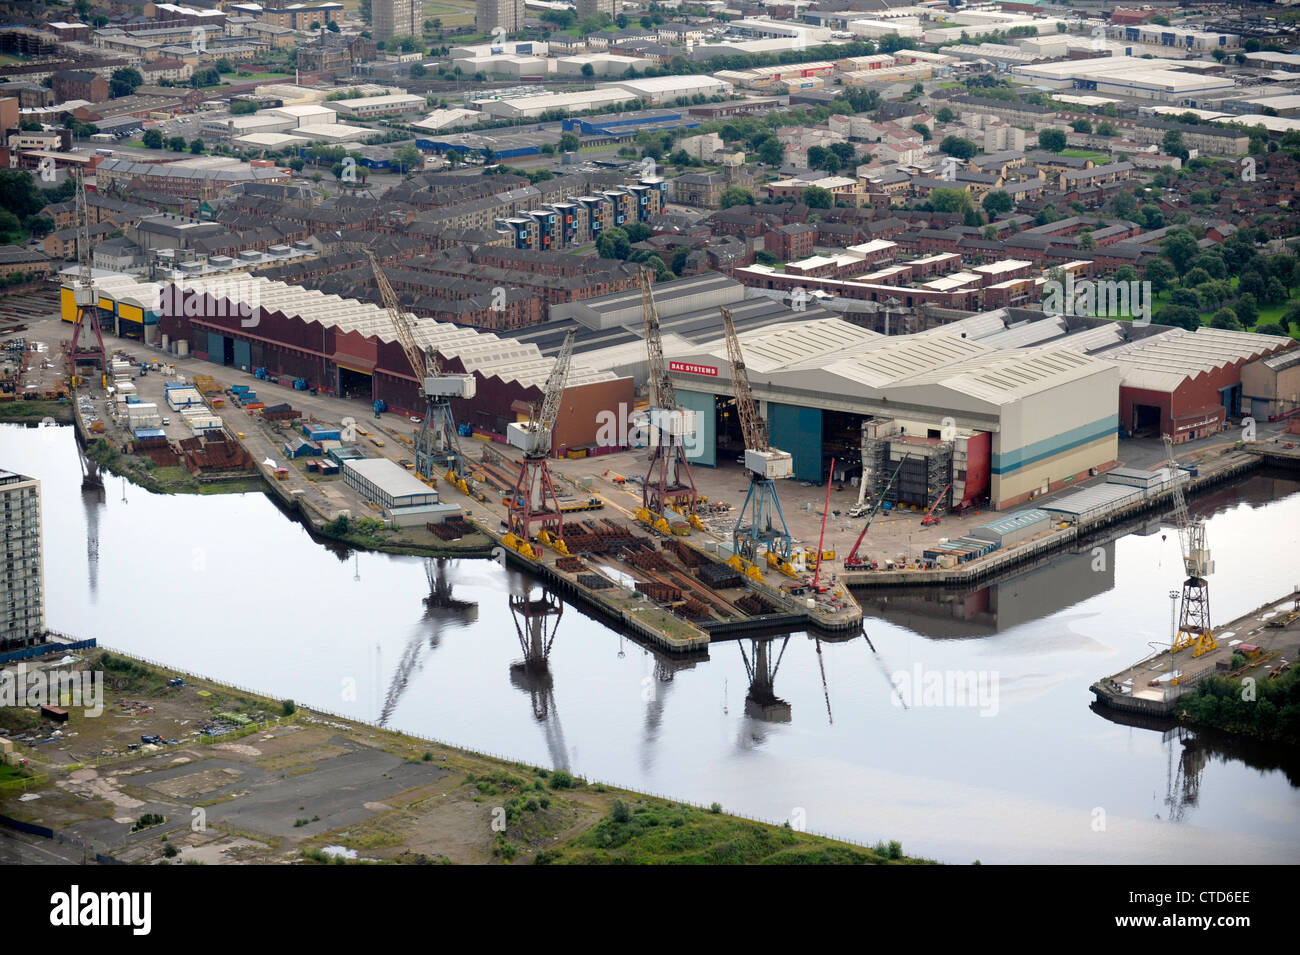 BAE Systems, Glasgow on the River Clyde - Stock Image